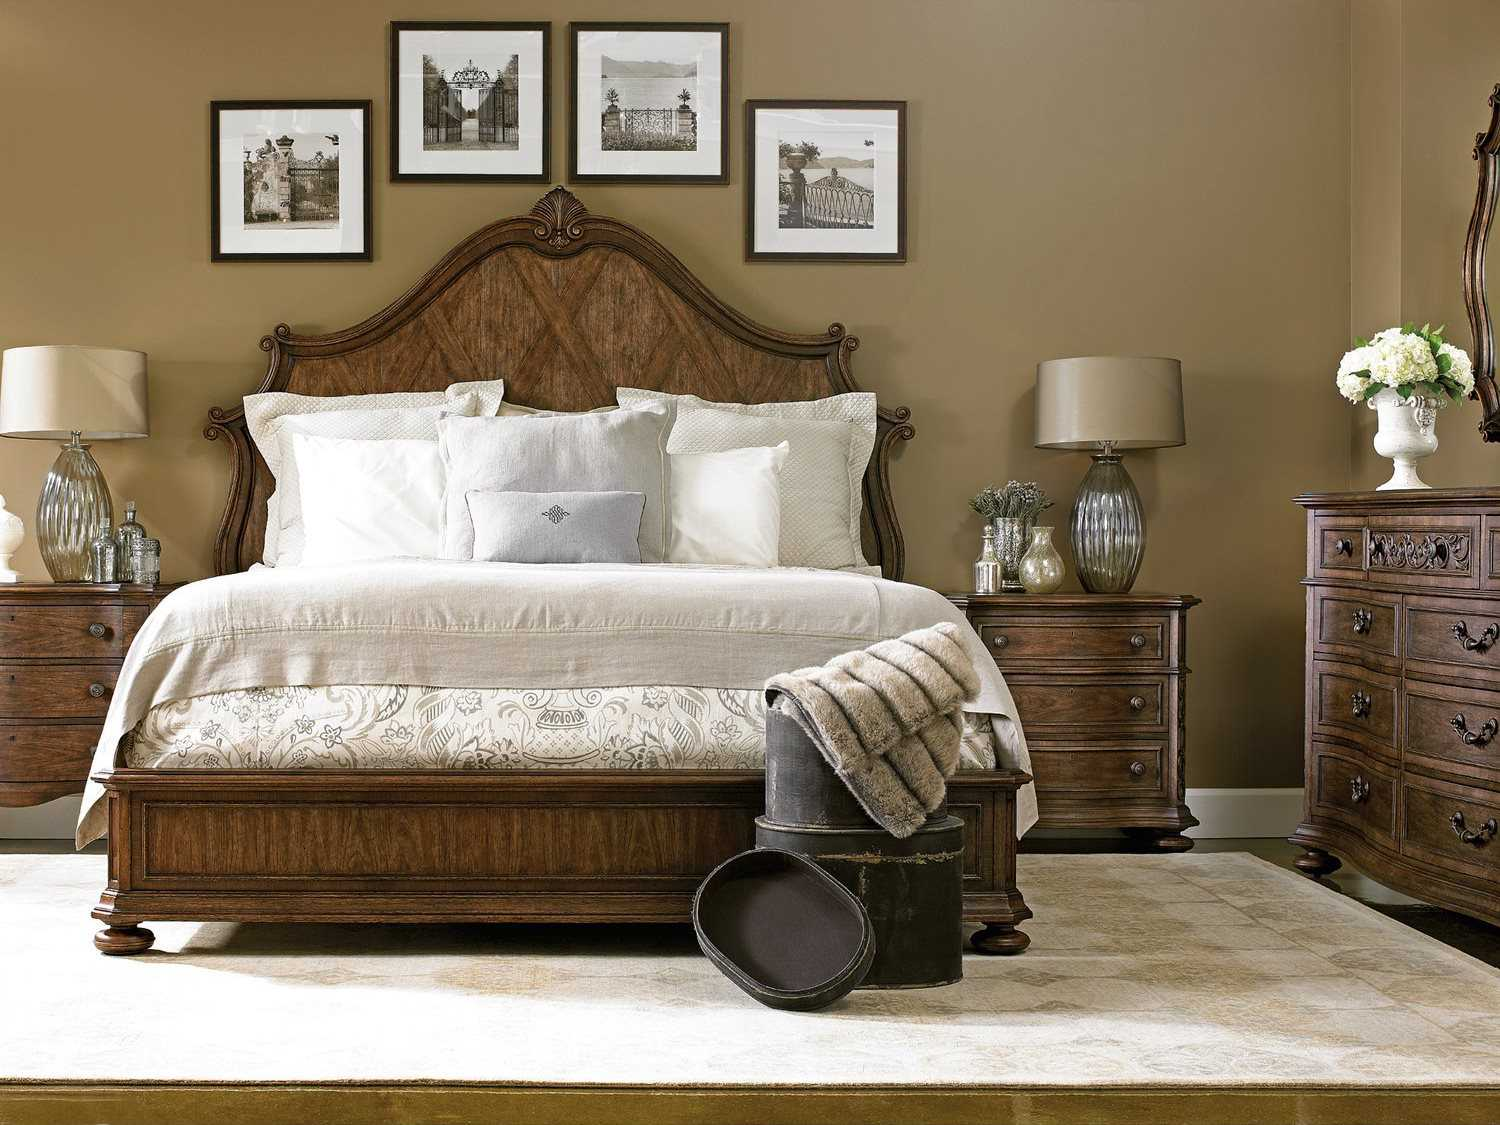 Stanley Furniture Villa Fiore Bedroom Set